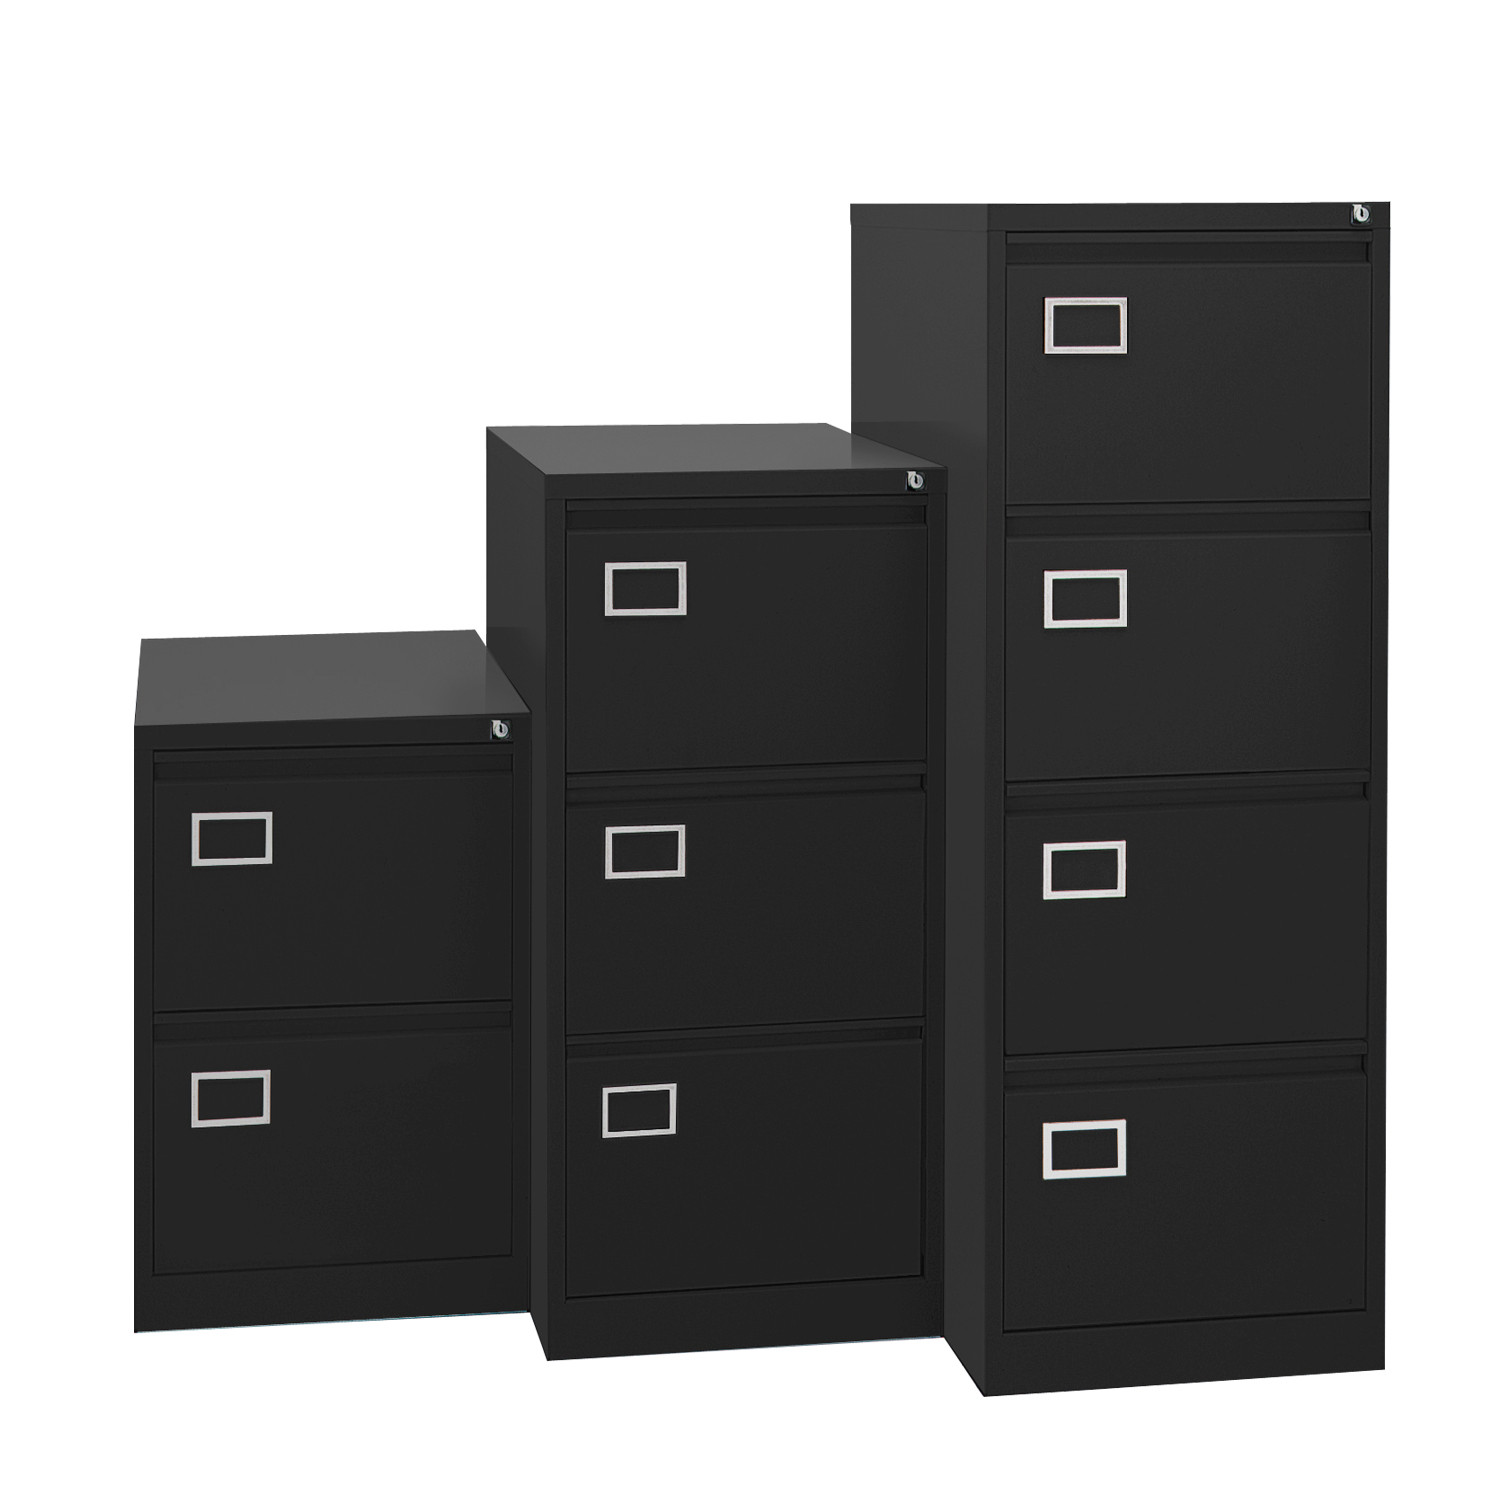 AOC Filing Cabinets in 2, 3 and 4 Drawer Height